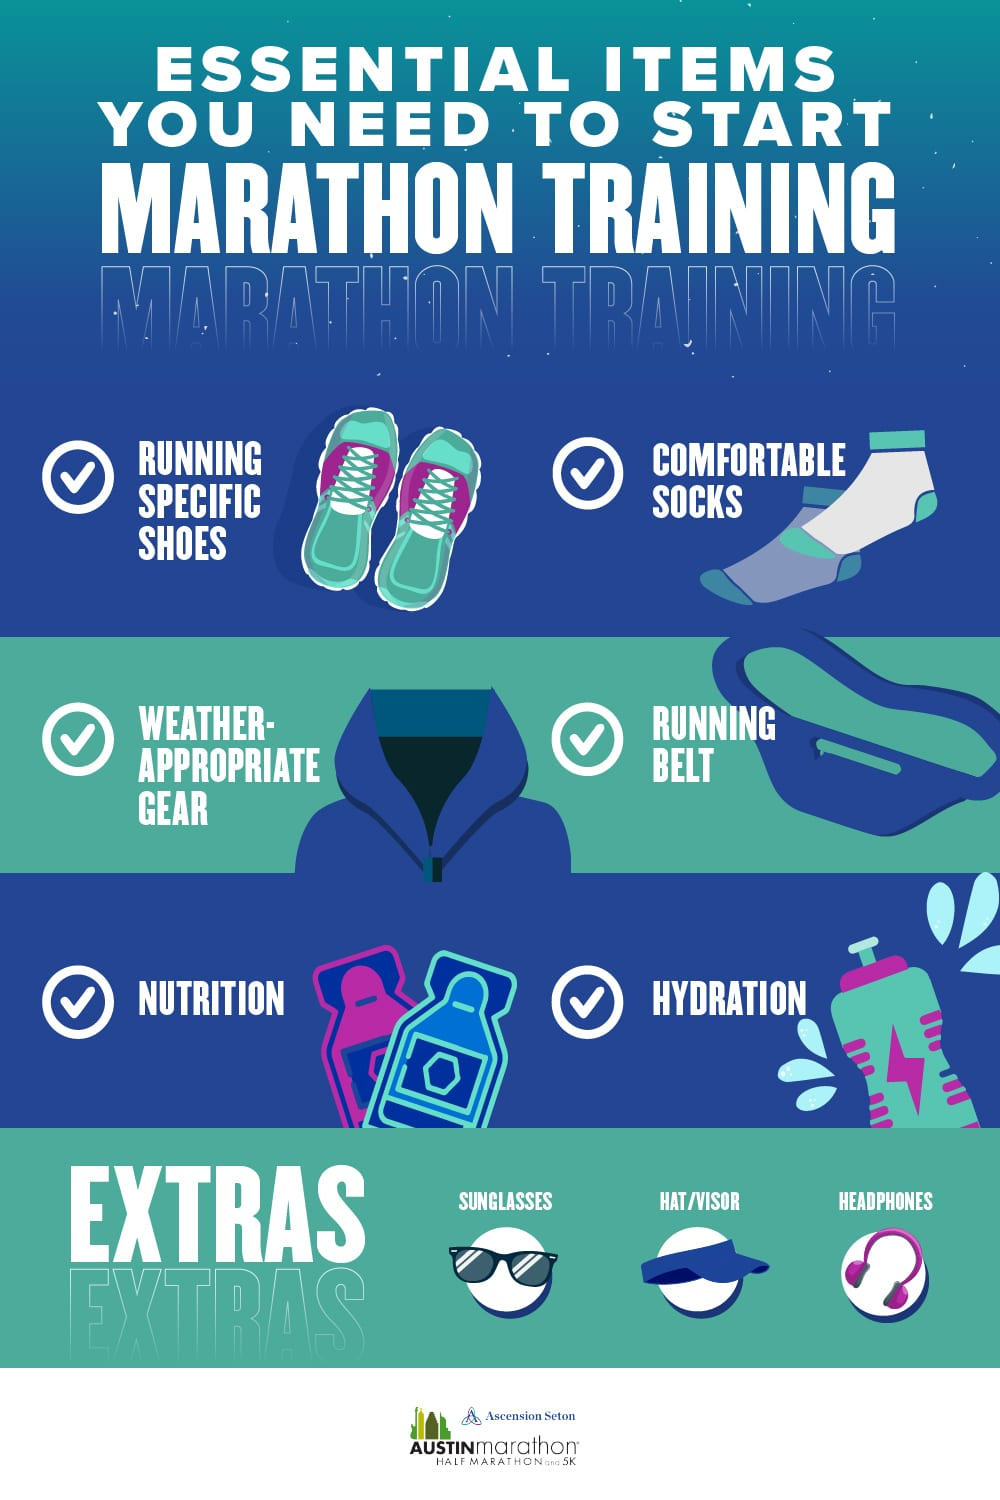 Infographic listing items needed to start marathon training, like running shoes, sunglasses, hydration. Read about all the items at https://youraustinmarathon.com/items-to-start-marathon-training/